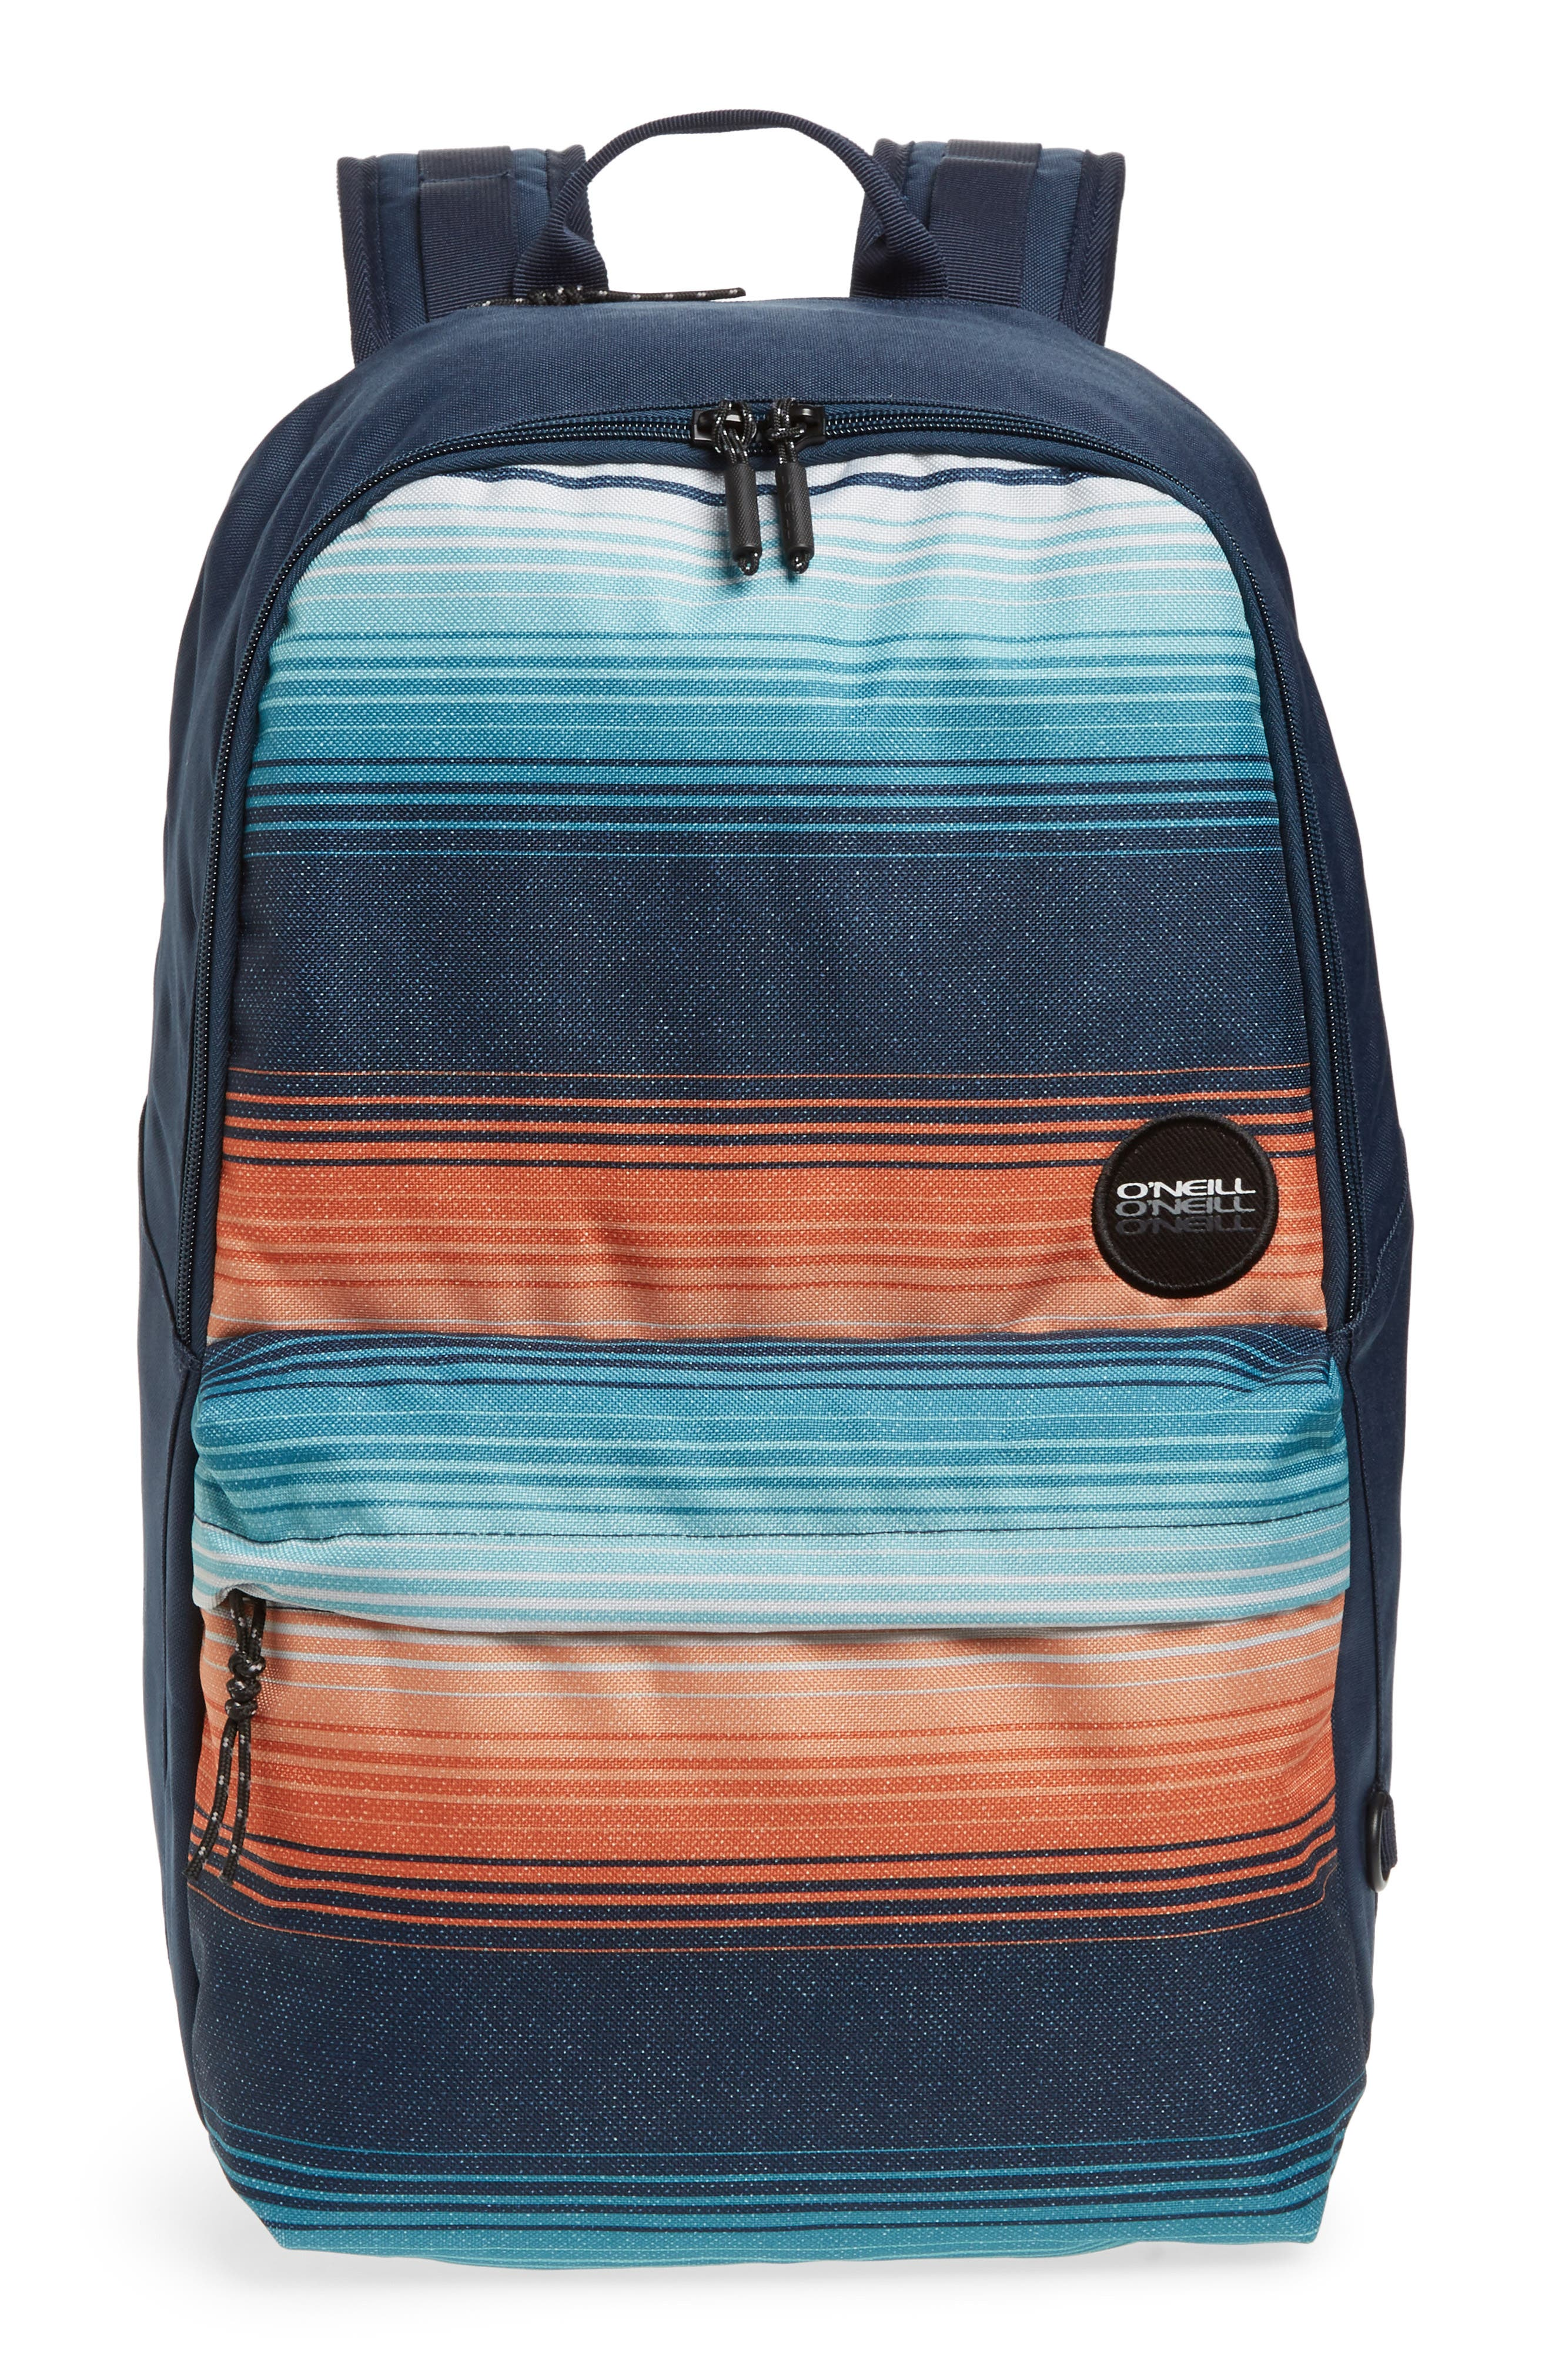 Transfer Backpack,                         Main,                         color, NAVY